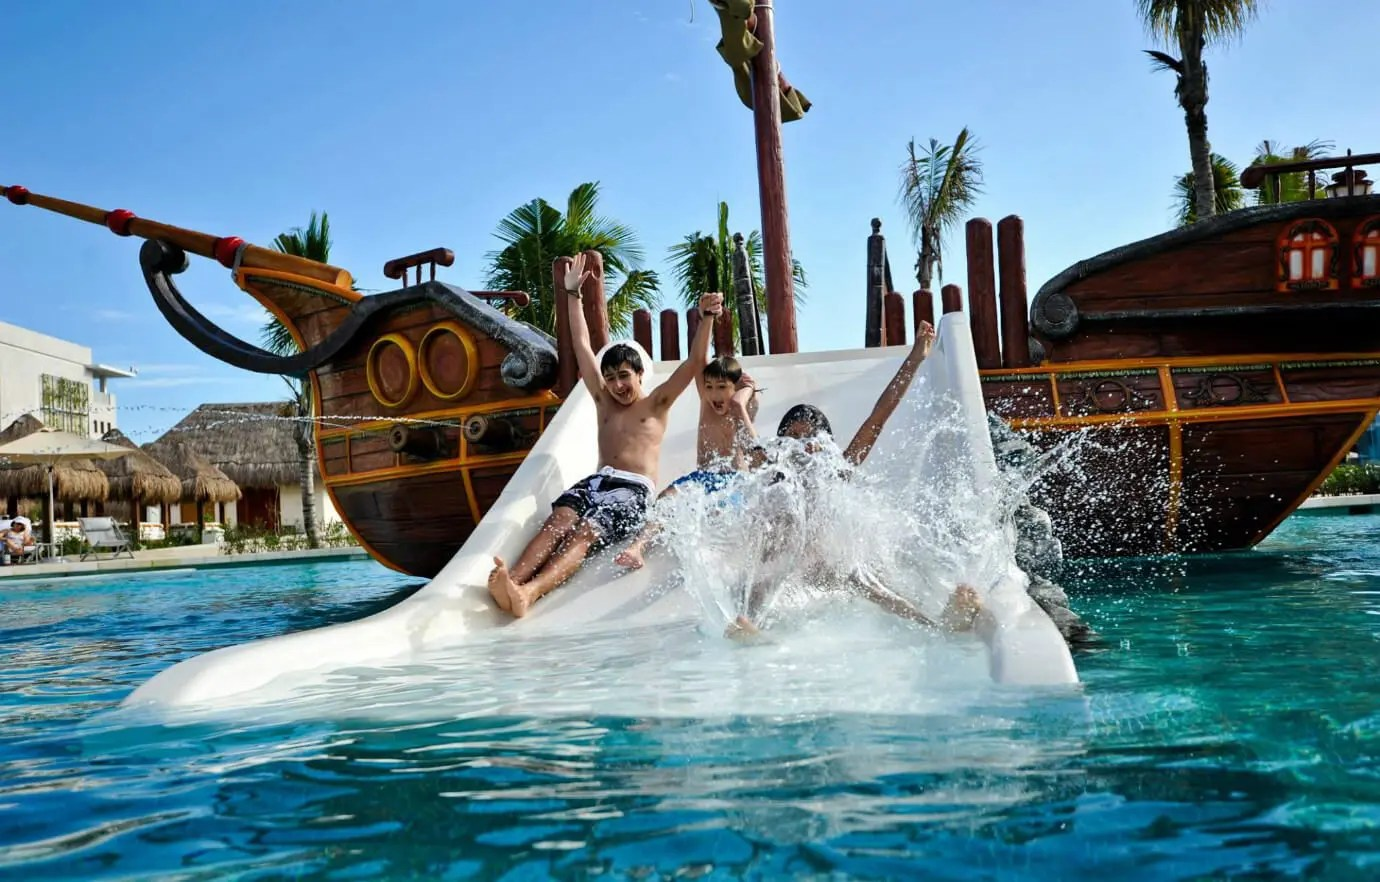 Fun Activities In Cancun For Kids